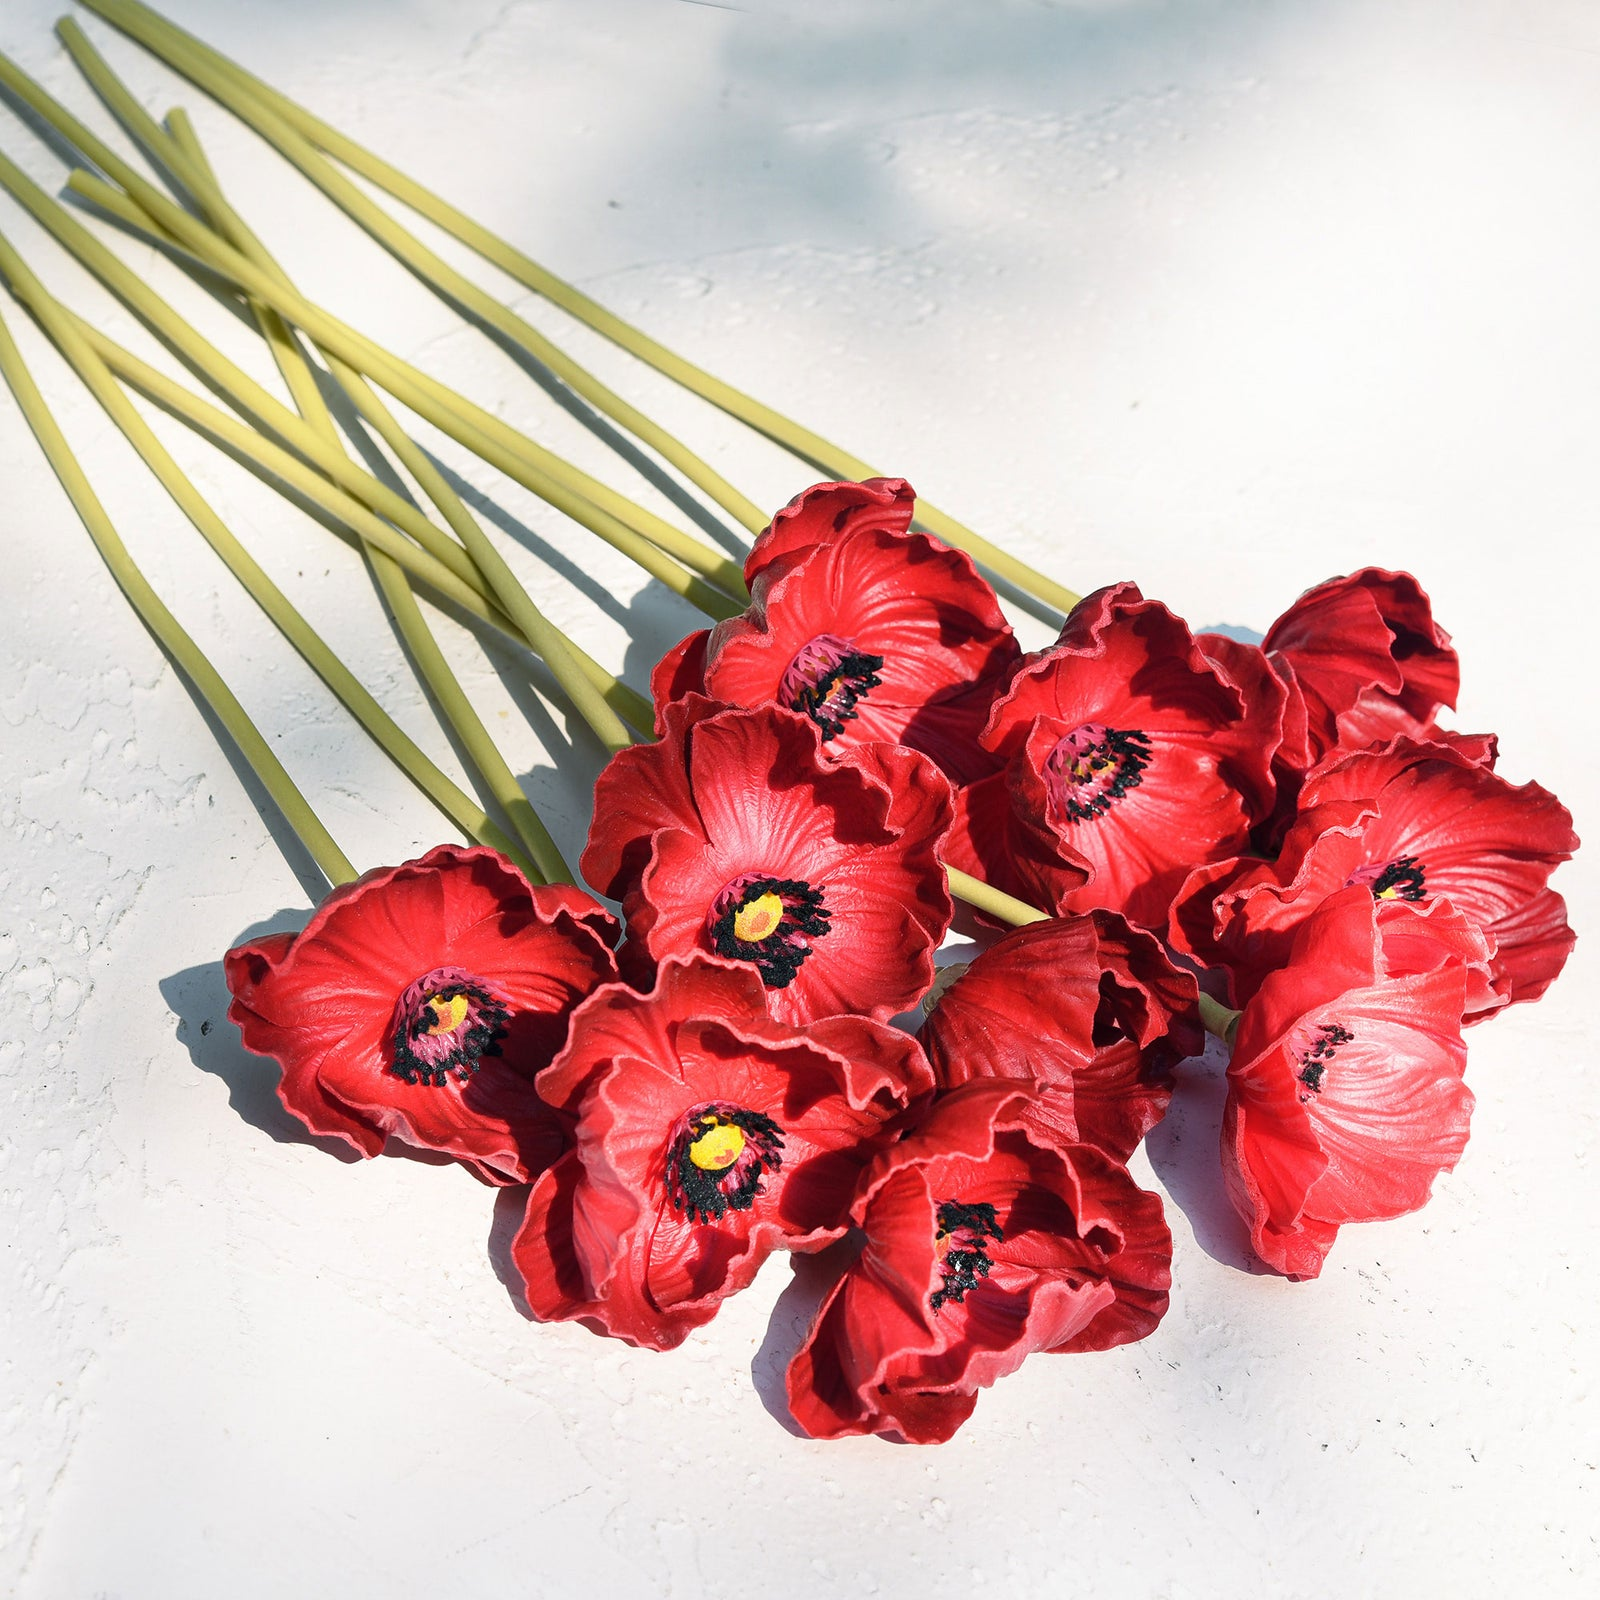 FiveSeasonStuff 10 Stems of Real Touch Artificial Poppy Flowers Remembrance Day Decorations (Red)